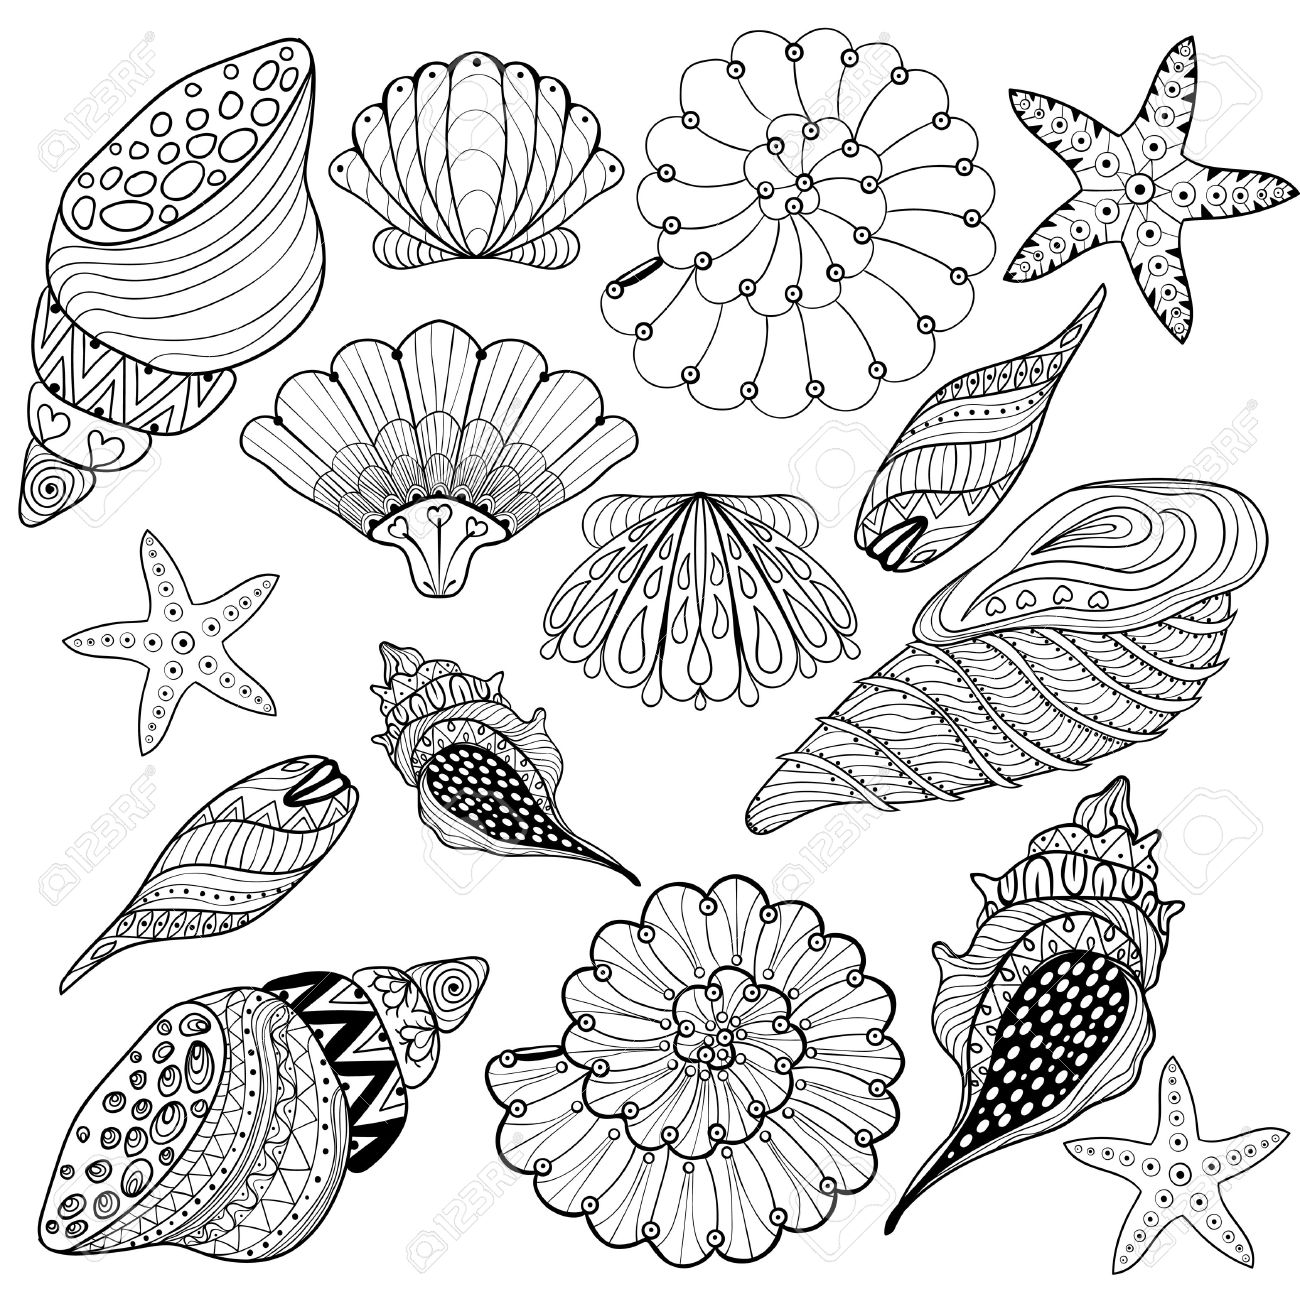 vector set shells zentangle seashells for adult anti stress coloring pages patterned sea shell illus